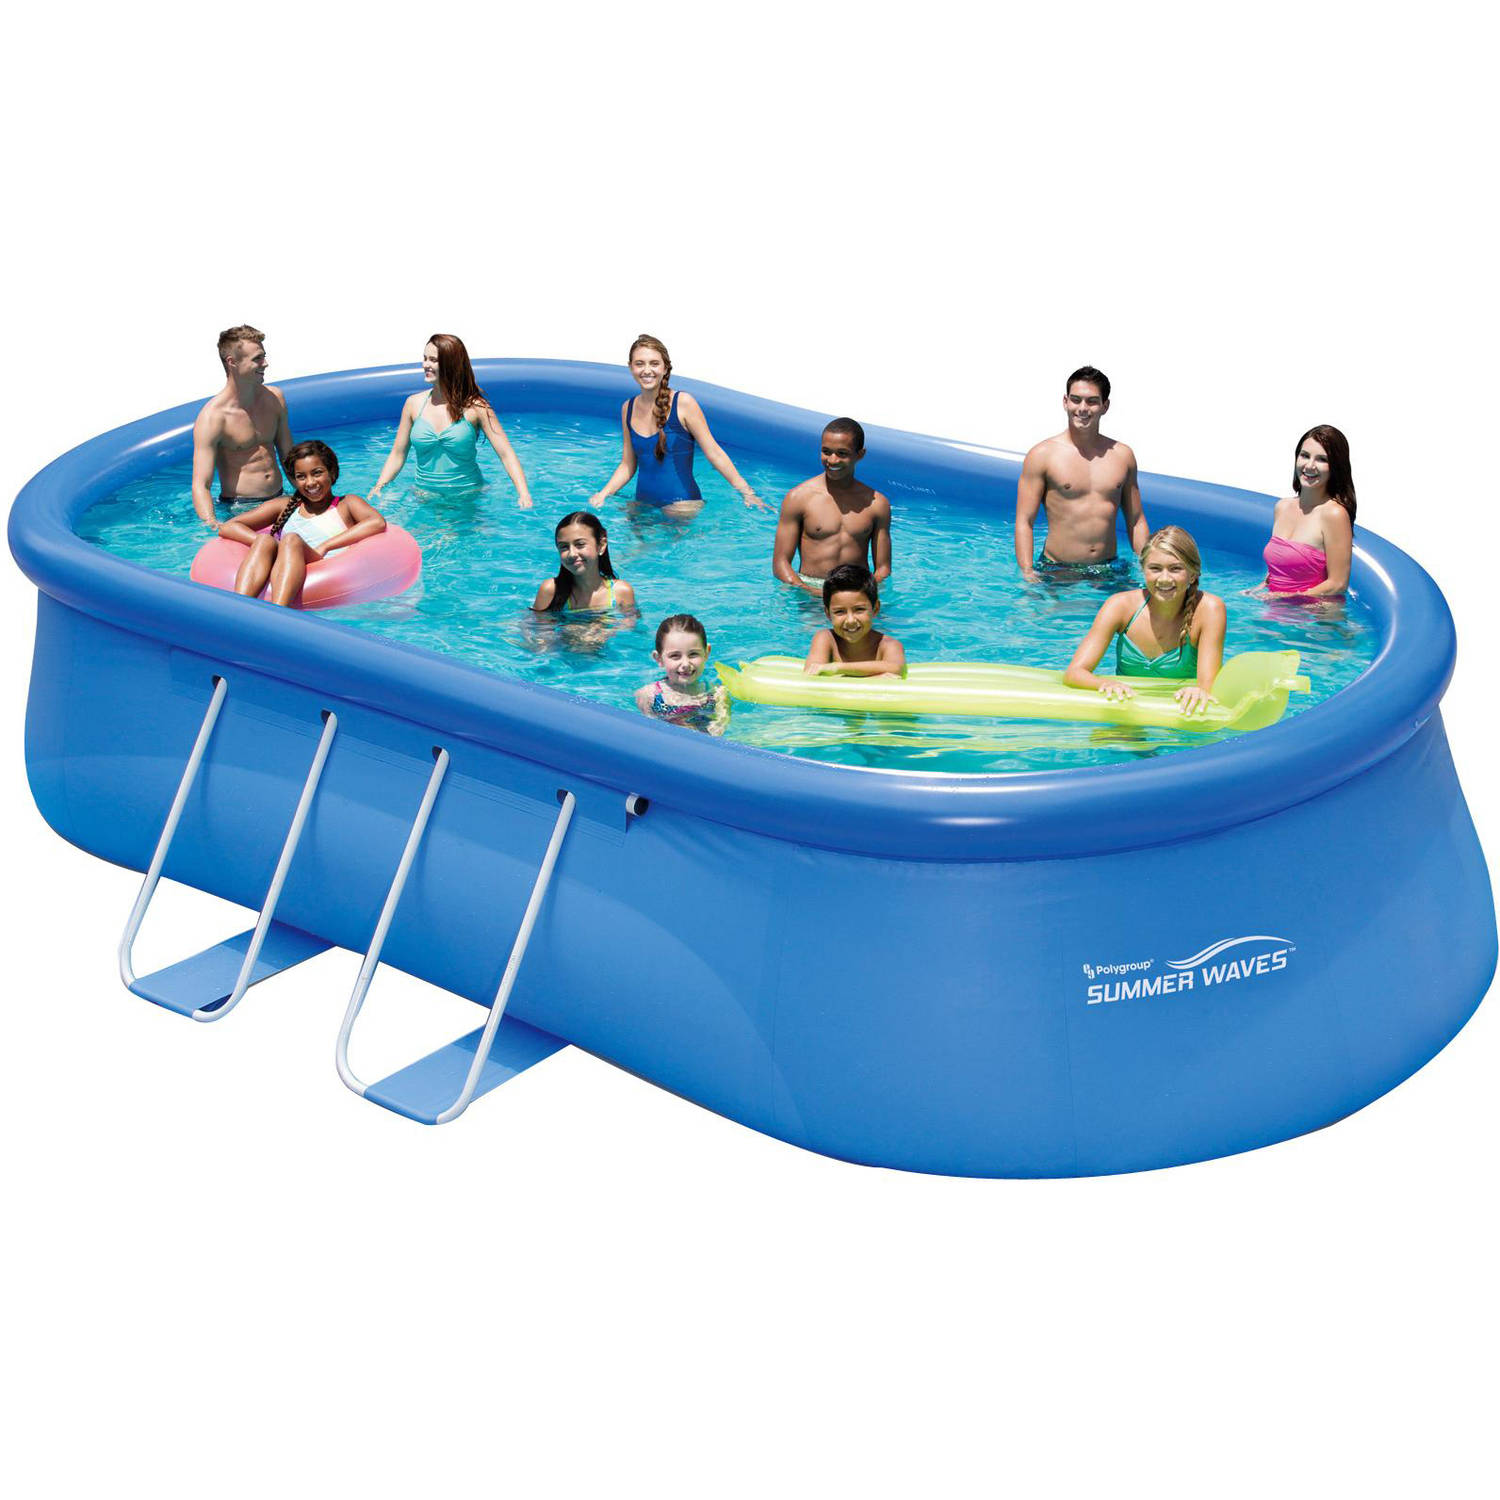 Summer waves 20 39 x 12 39 x 48 quick set oval frame above for Above ground pools quick set